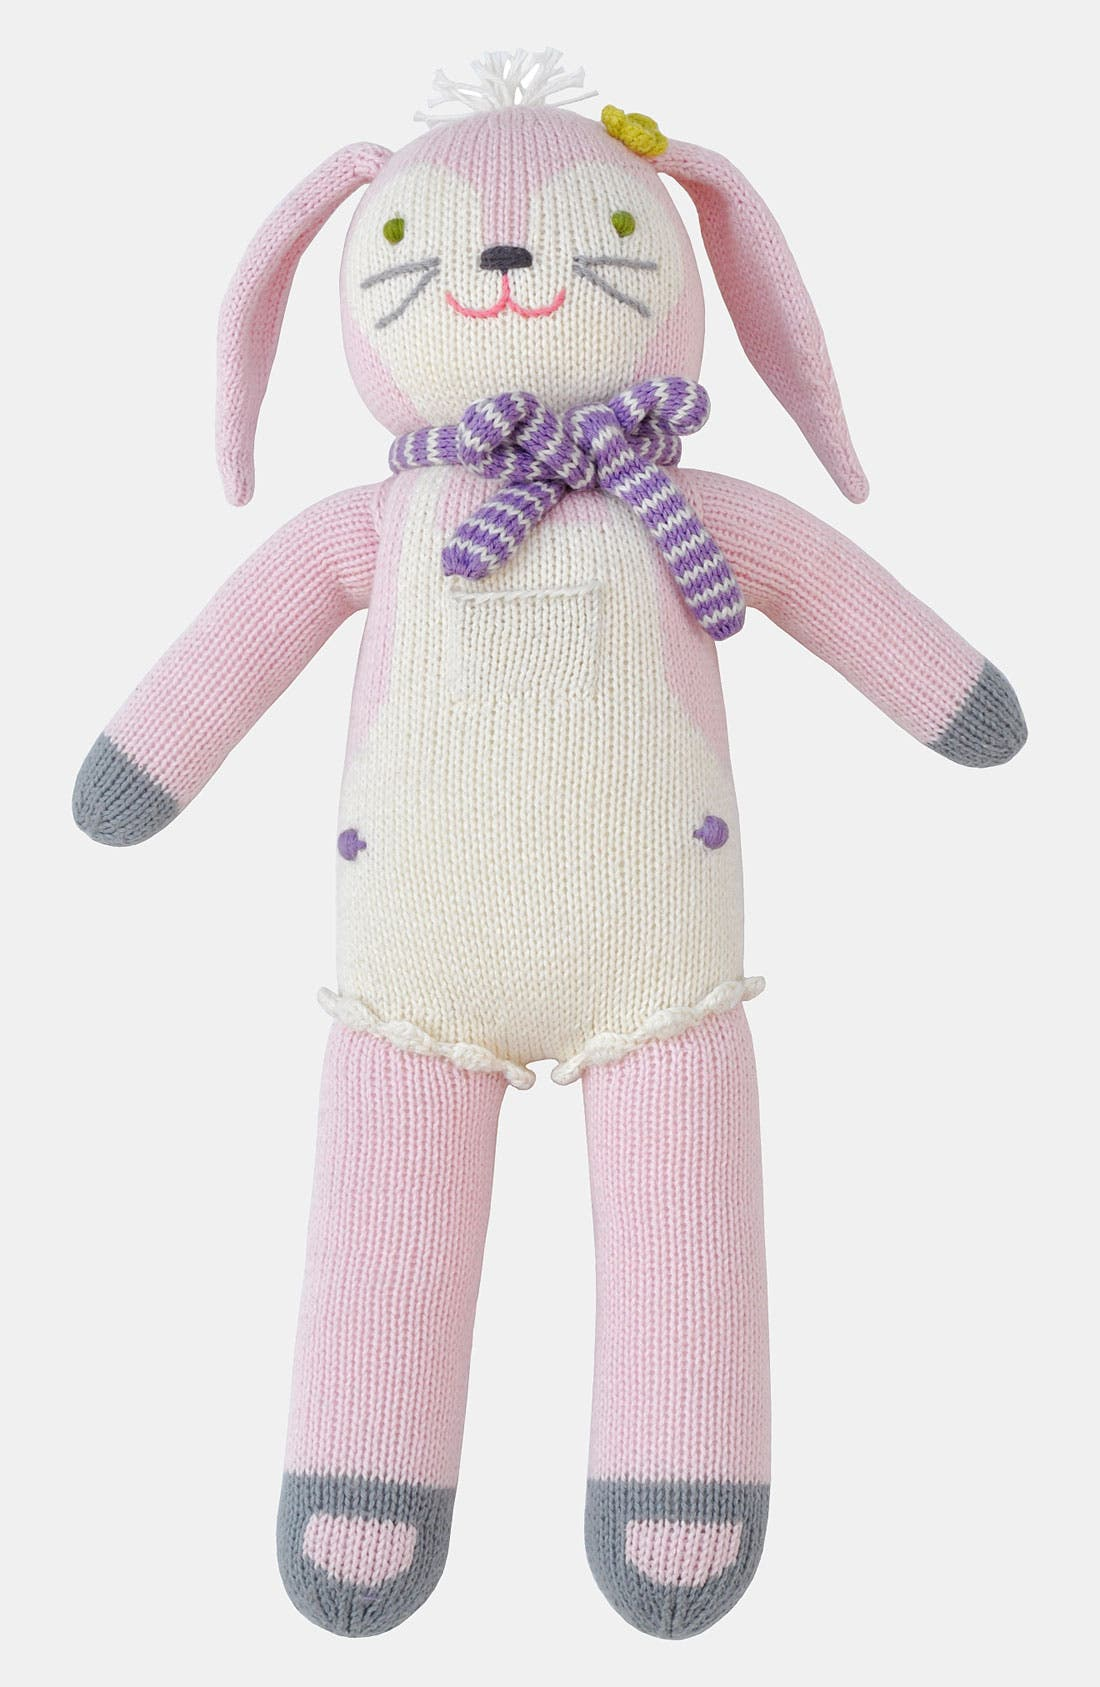 Alternate Image 1 Selected - Blabla 'Fleur the Bunny' Knit Doll